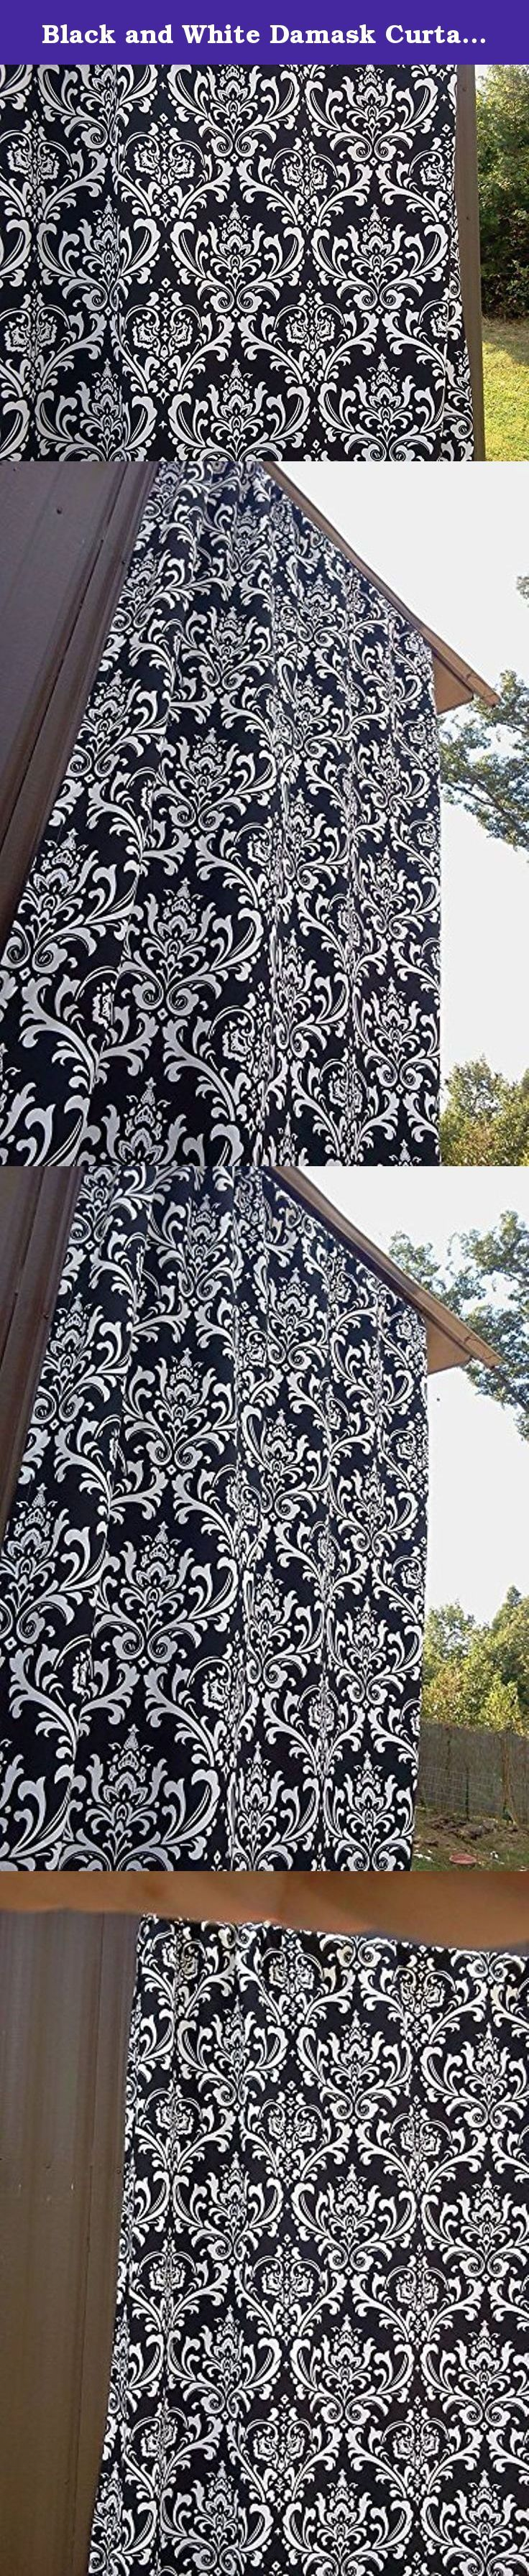 "Black and White Damask Curtains, Two 84"" Long Full Length Valance Curtains, 100% quality cotton duck Premier Prints drapery fabric These curtains are 84"" Long by 52"" Wide. Black and White Damask Curtains, Full Length 84"" Curtains; 100% quality cotton duck, Premier Prints home décor weight drapery fabric. Please allow 7-14 days for delivery, as the curtains are handmade after your purchase to keep inventory costs low. Keeping inventory costs low helps keep the price of this item at a..."